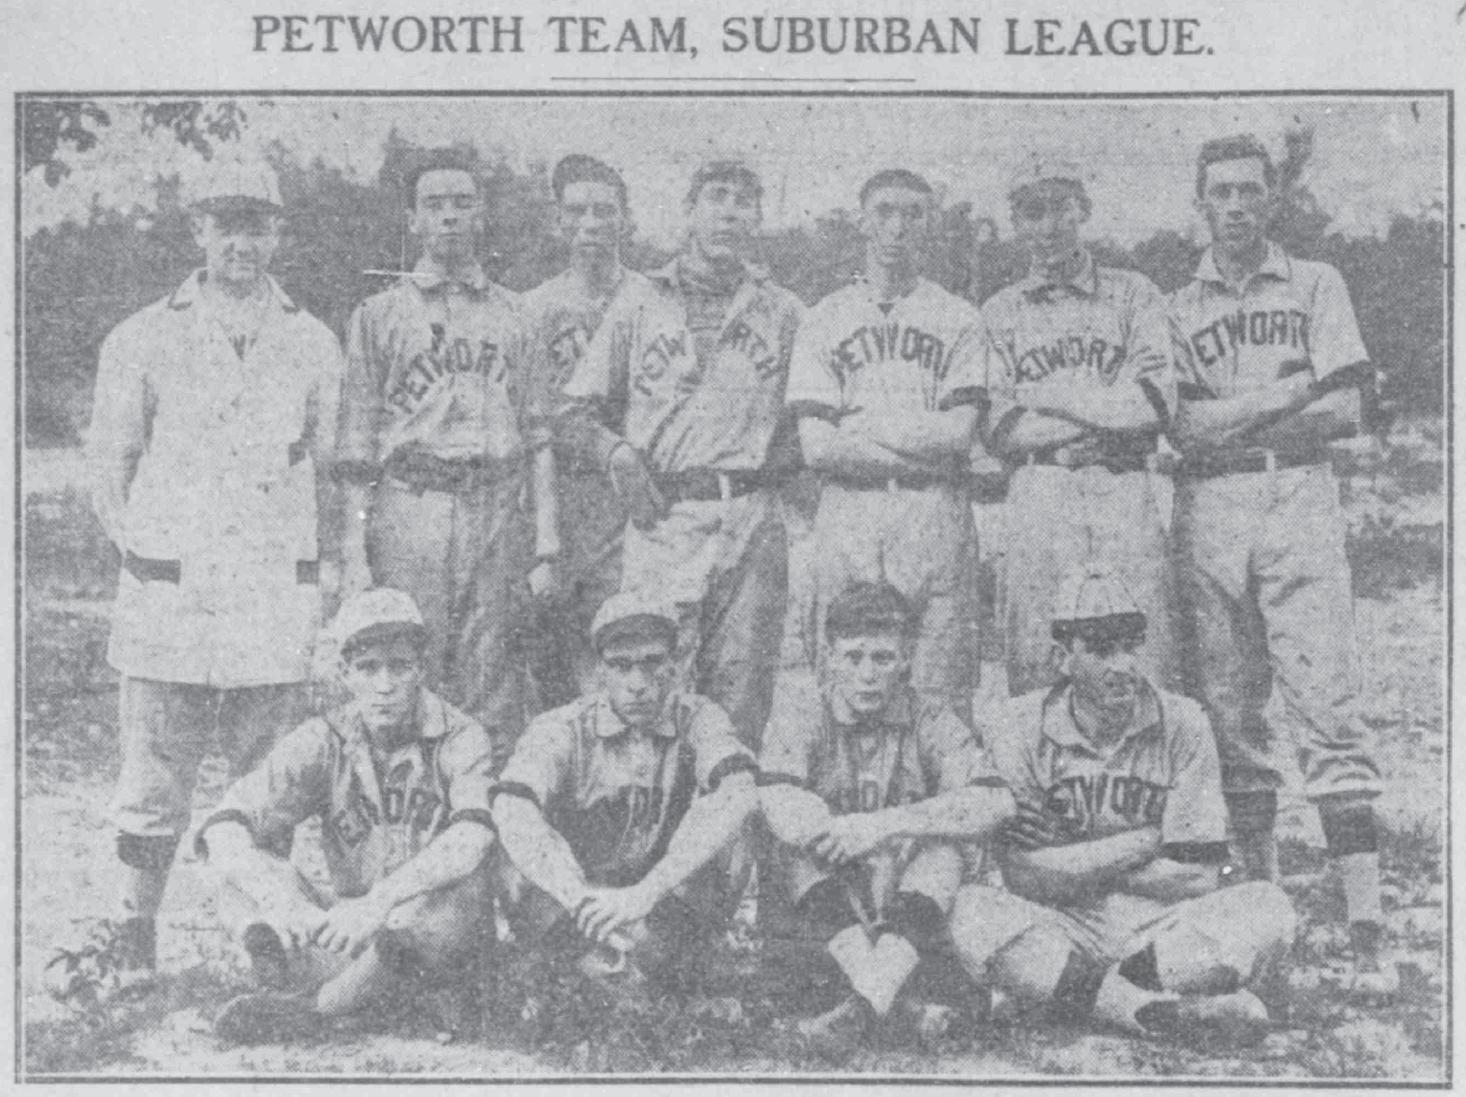 Photo from the Washington Herald, Aug. 19, 1909. Numerous amateur leagues ...